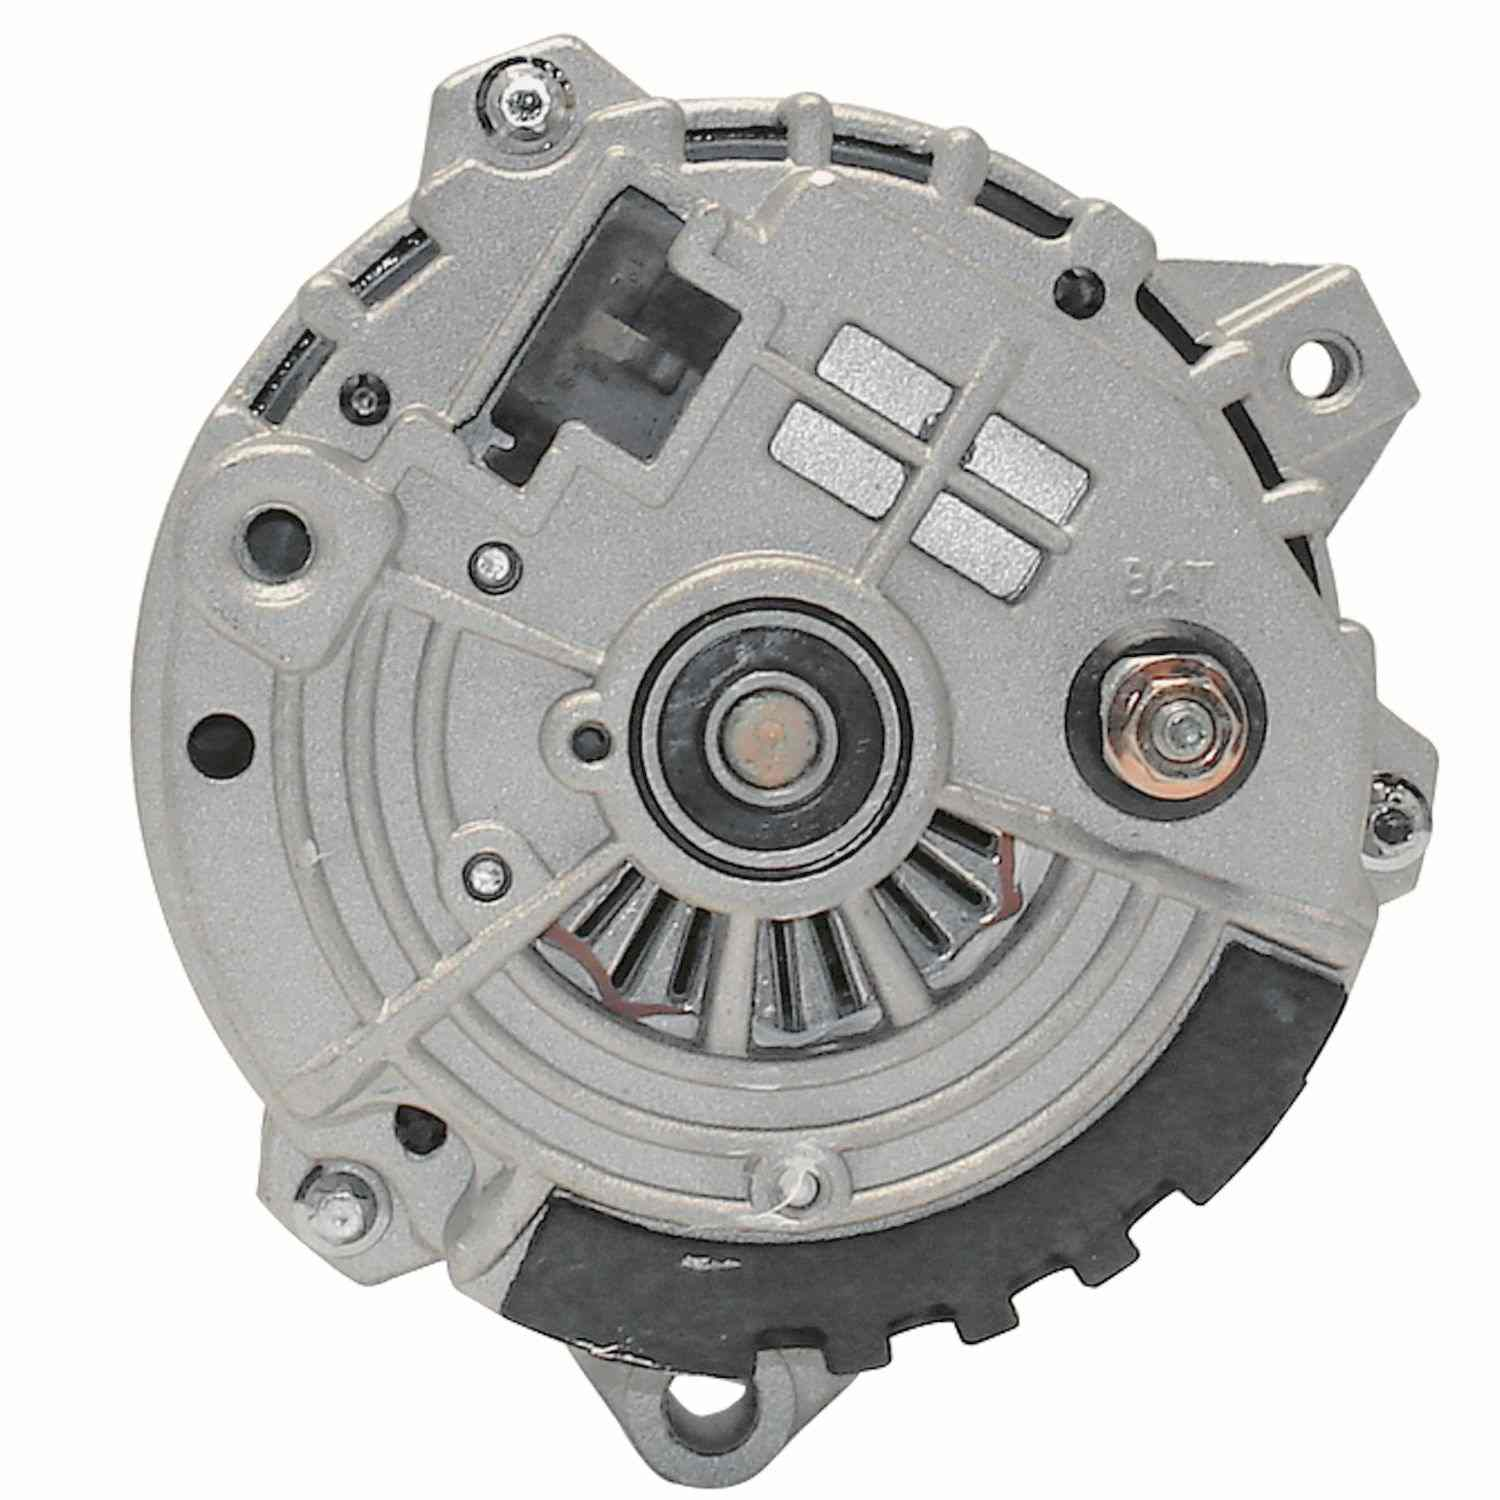 ACDELCO GOLD/PROFESSIONAL - Reman Alternator - DCC 334-2396A